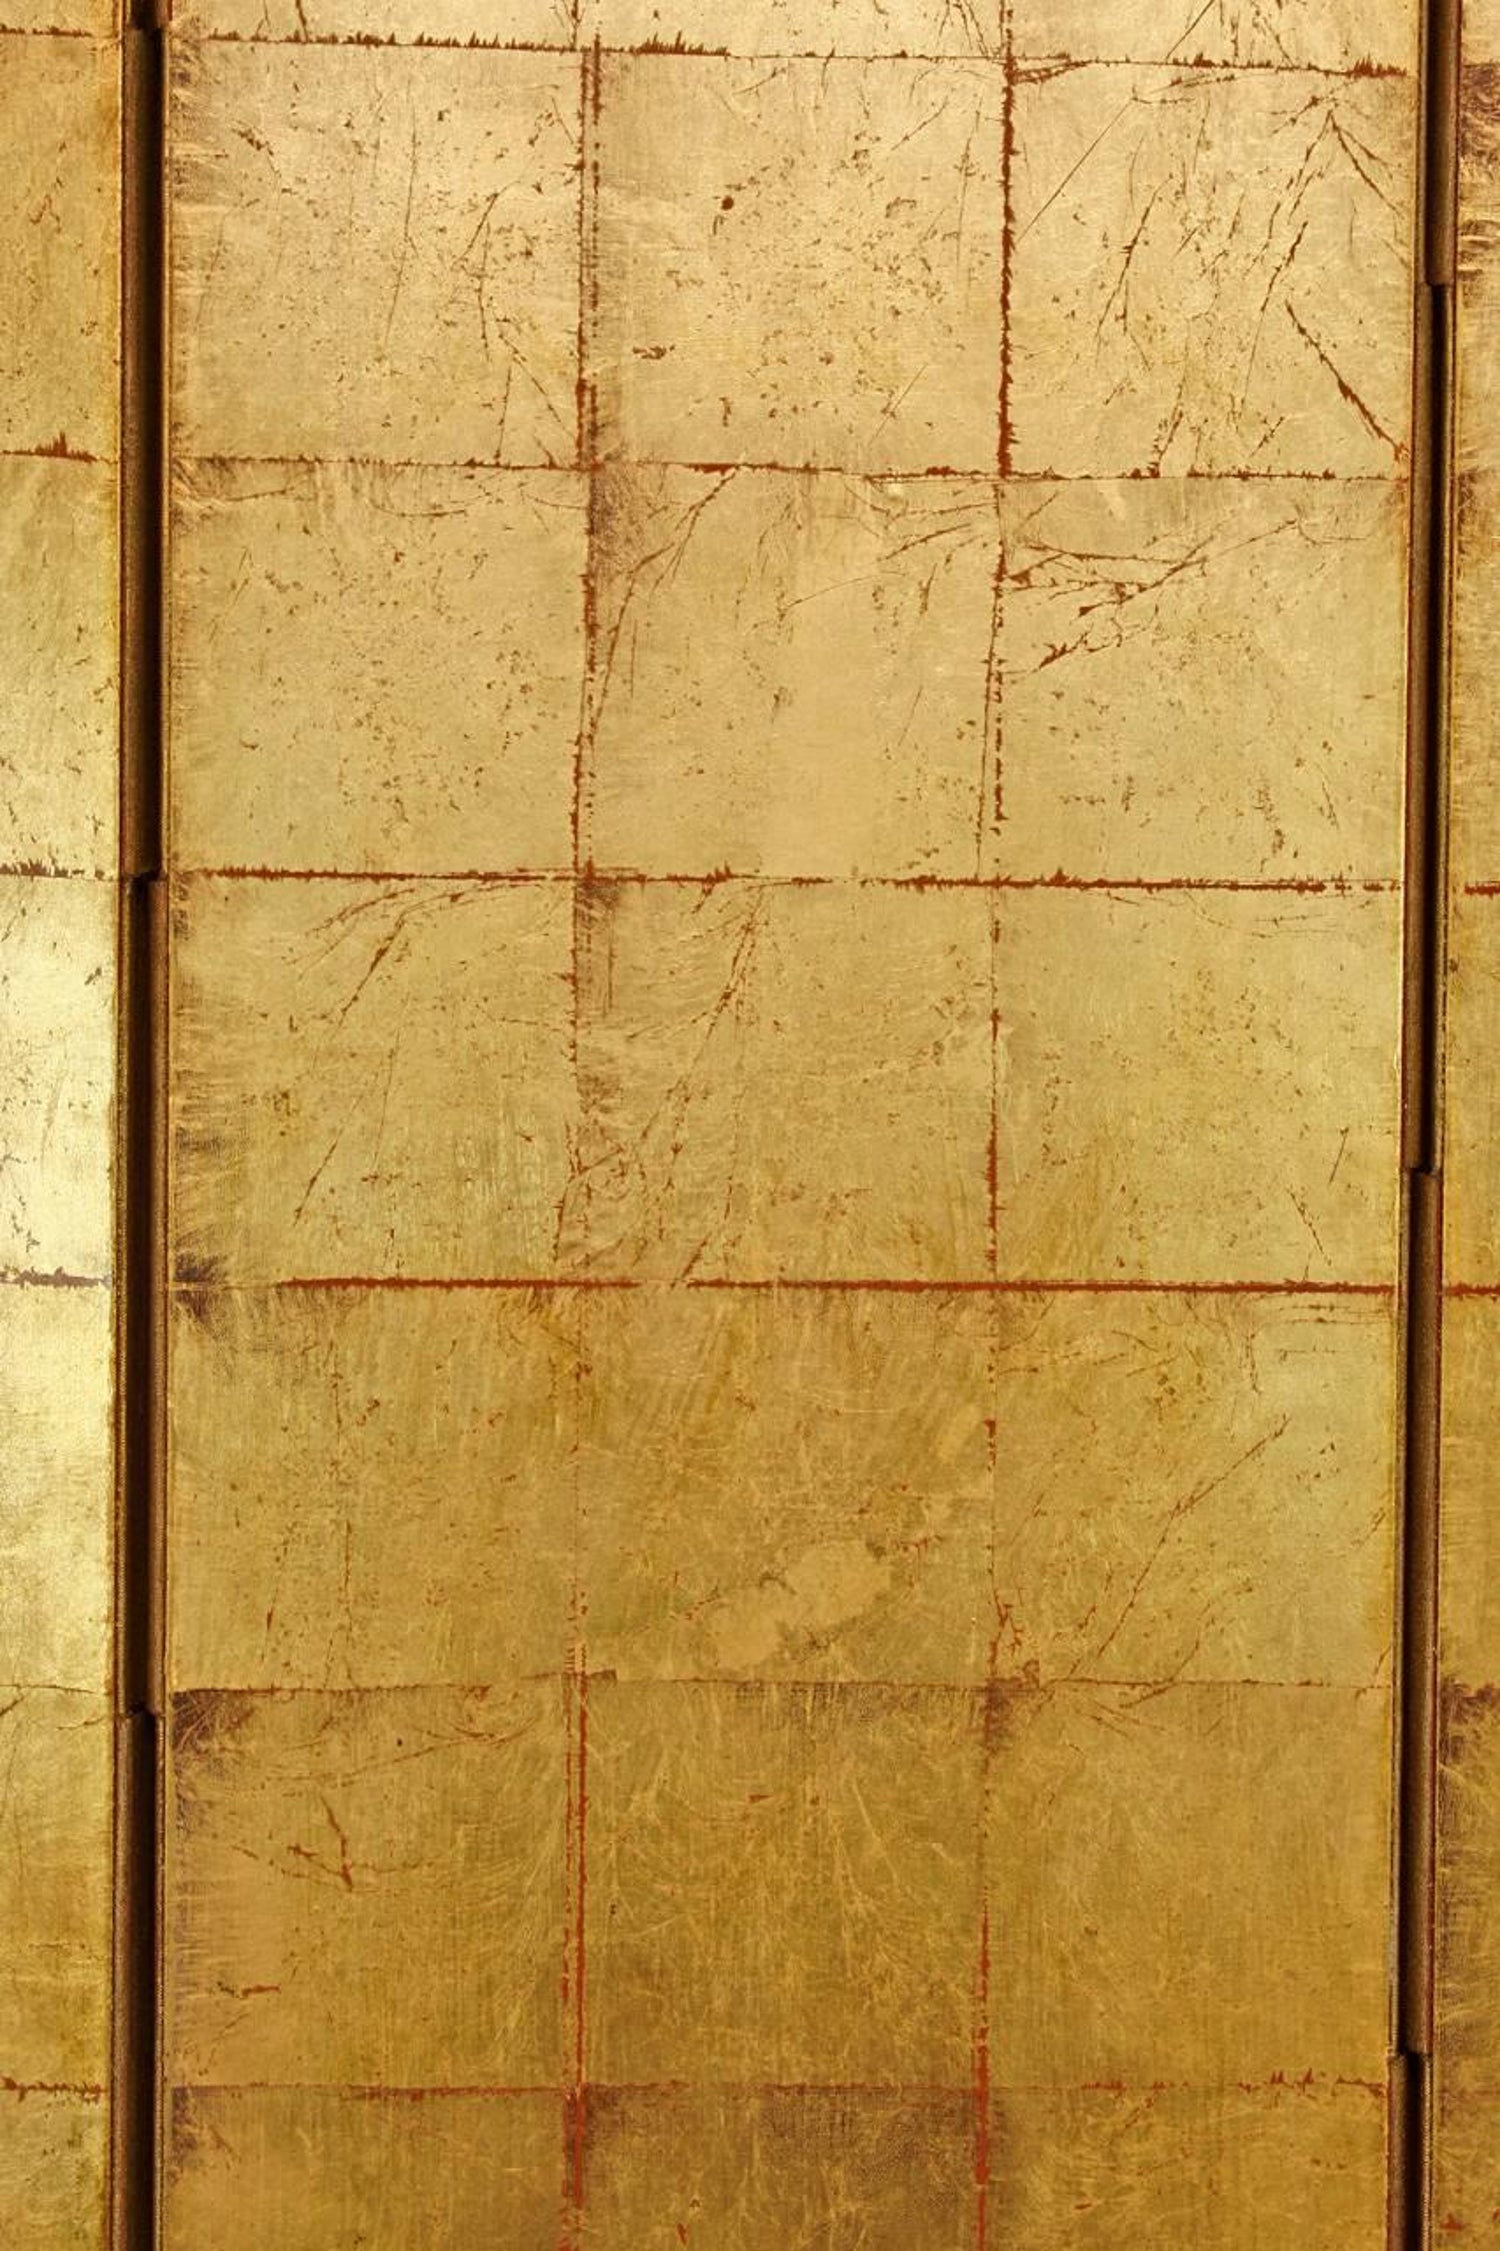 Four-Panel Gold Leaf Room Divider Two Sided Screen For Sale at 1stdibs